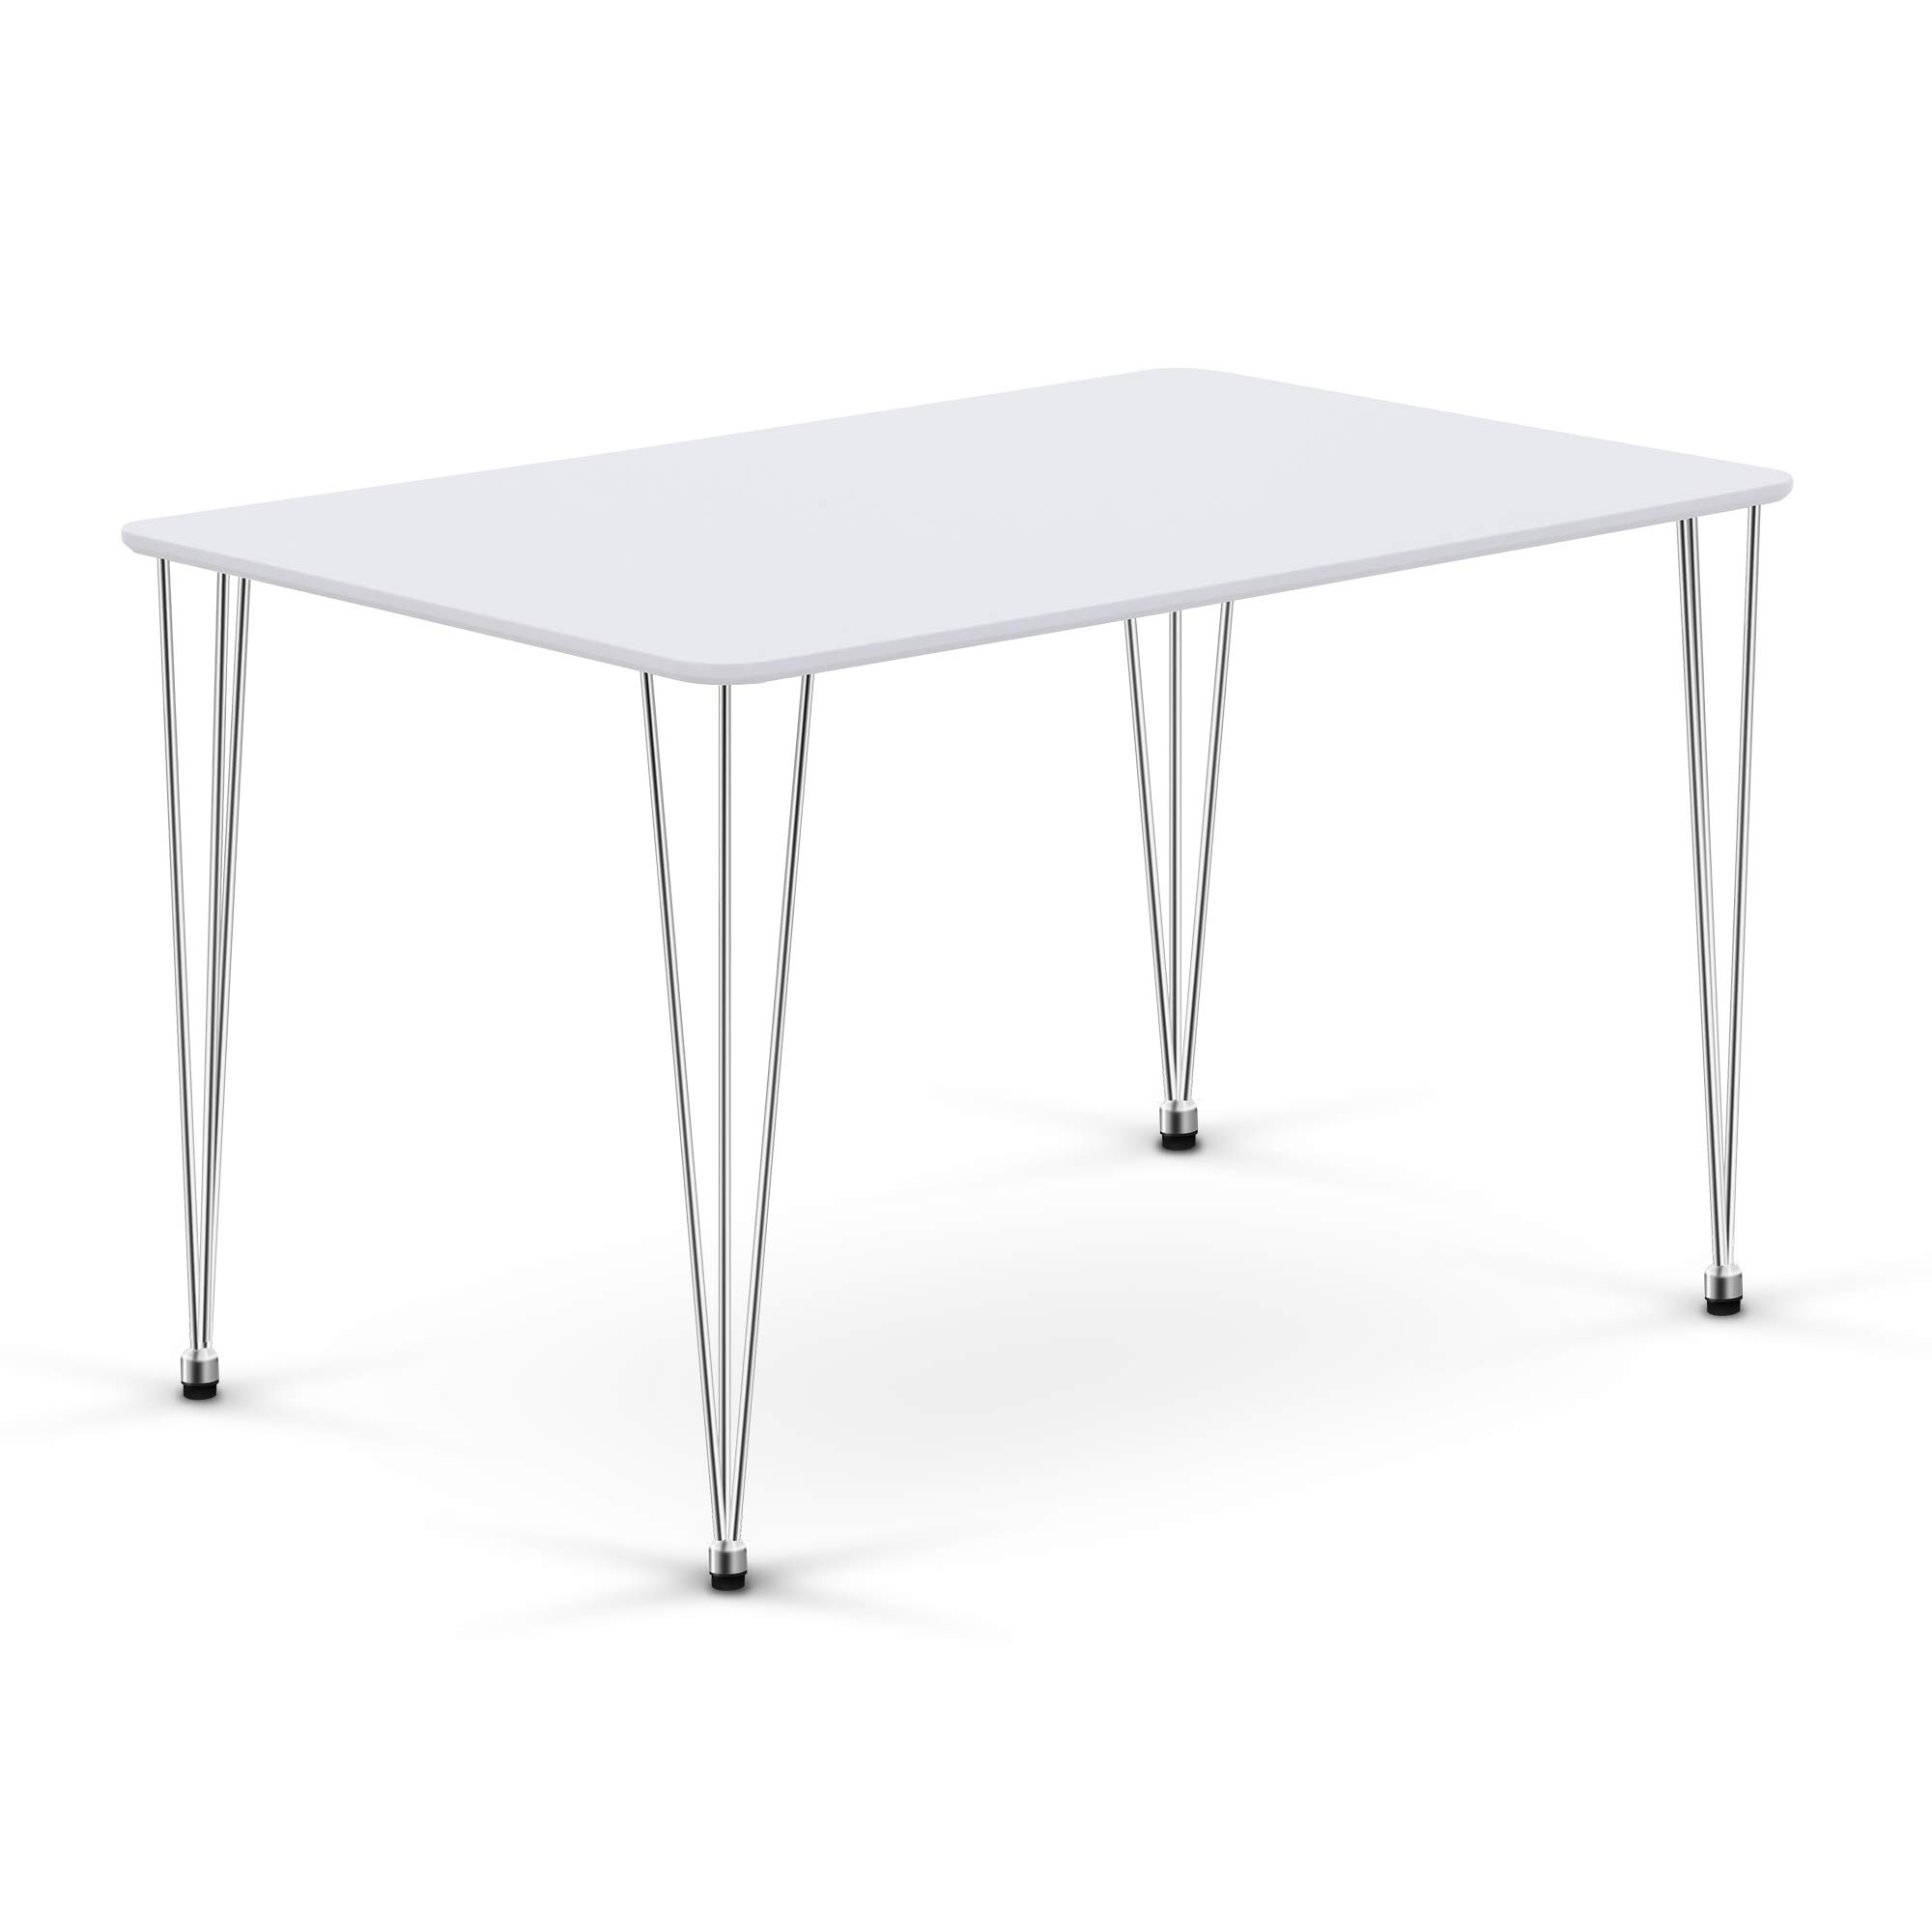 Amazon Com Ivinta Modern Wood Rectangle Dining Table For 4 6 Hairpin White Kitchen Dining Room Table Leisure Coffee Table Computer Desk 47 5 X 30 X 29inch Tables